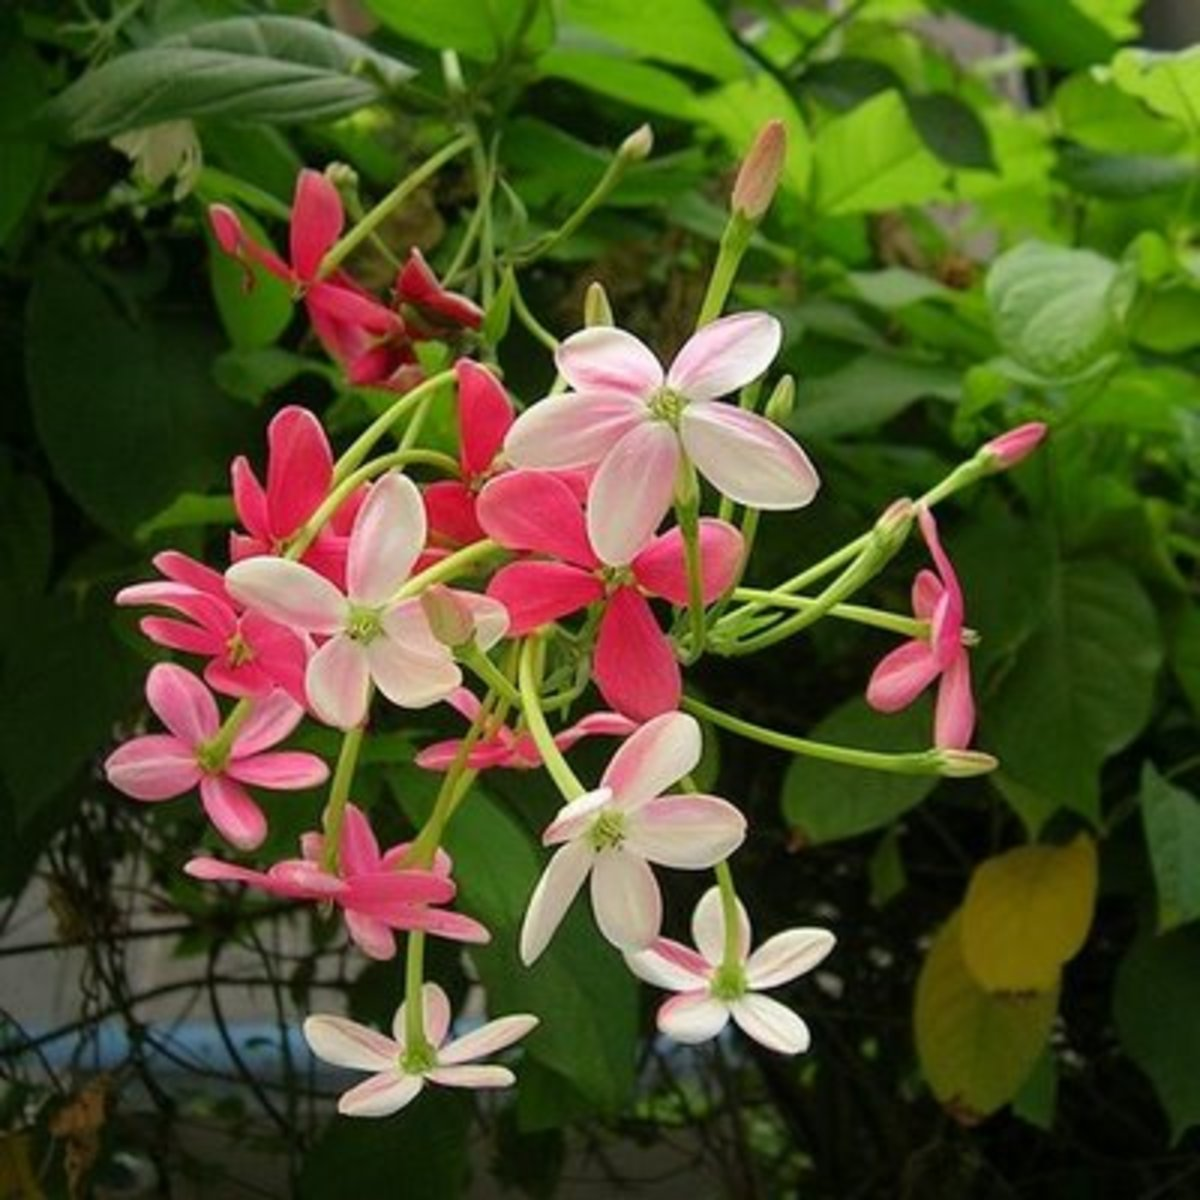 The Rangoon Creeper:  A Beautiful Blooming Vine